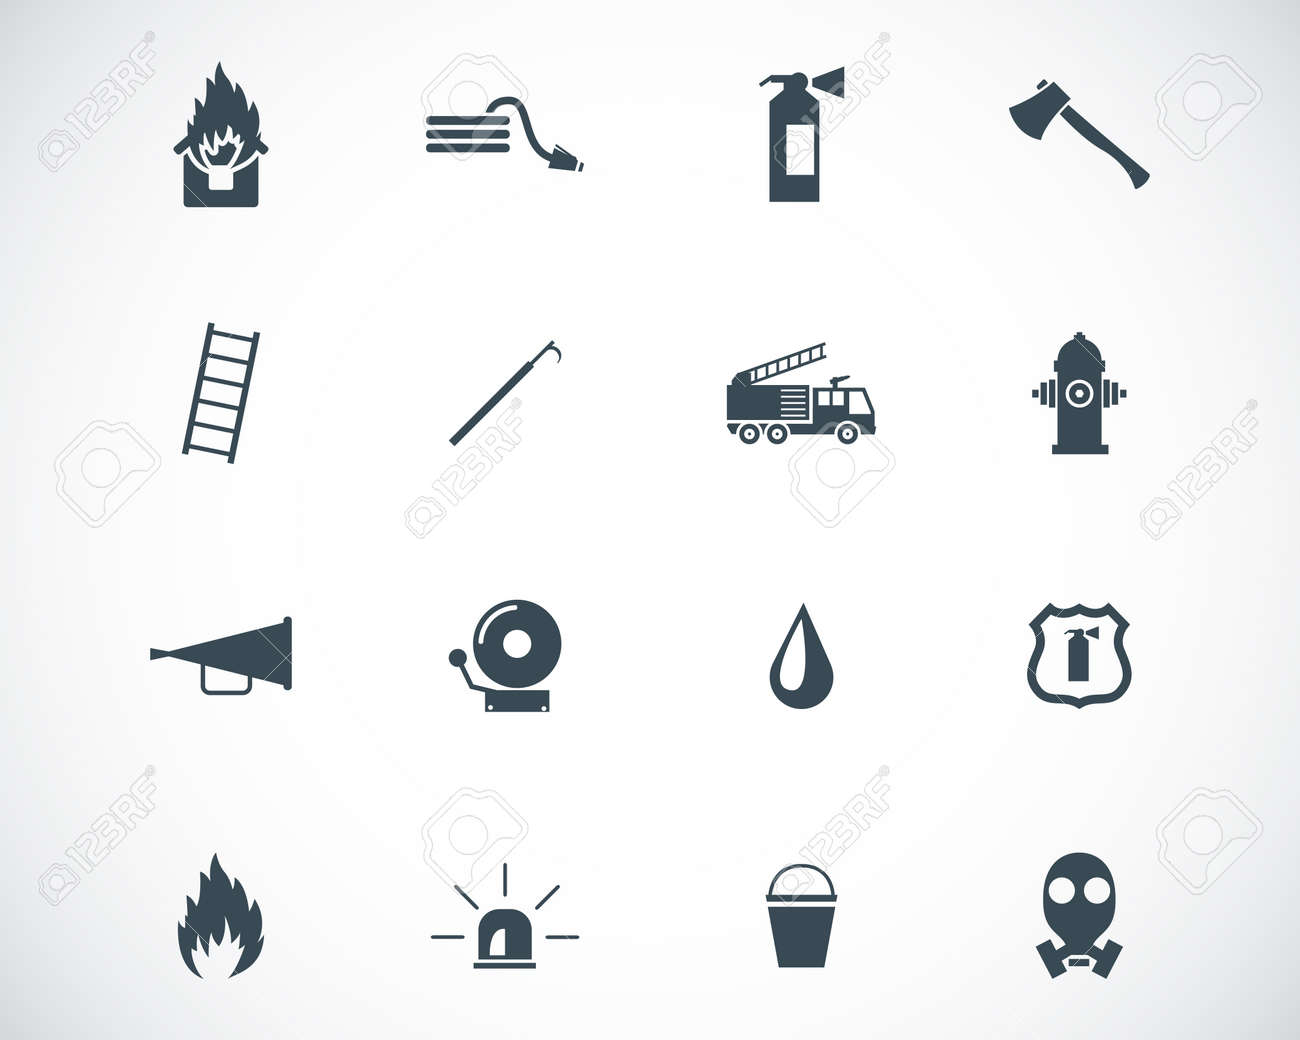 Vector black firefighter icons set - 23398588